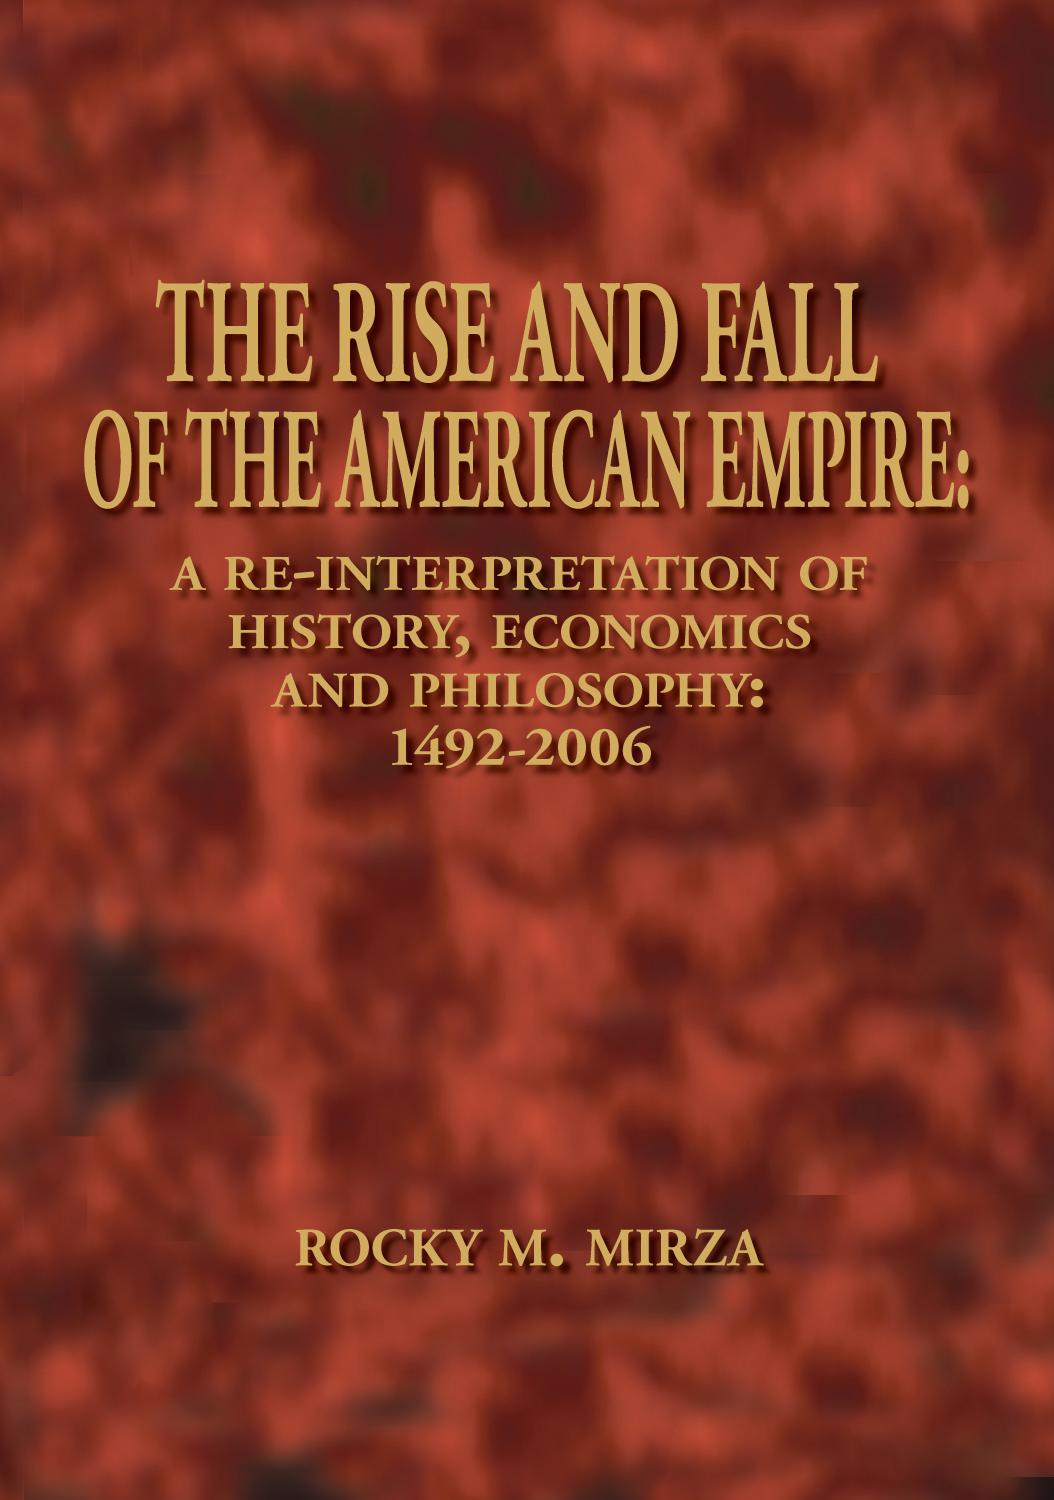 The Rise and Fall of the American Empire: A Re-Interpretation of History, Economics and Philosophy: 1492-2006 EB9781425135515